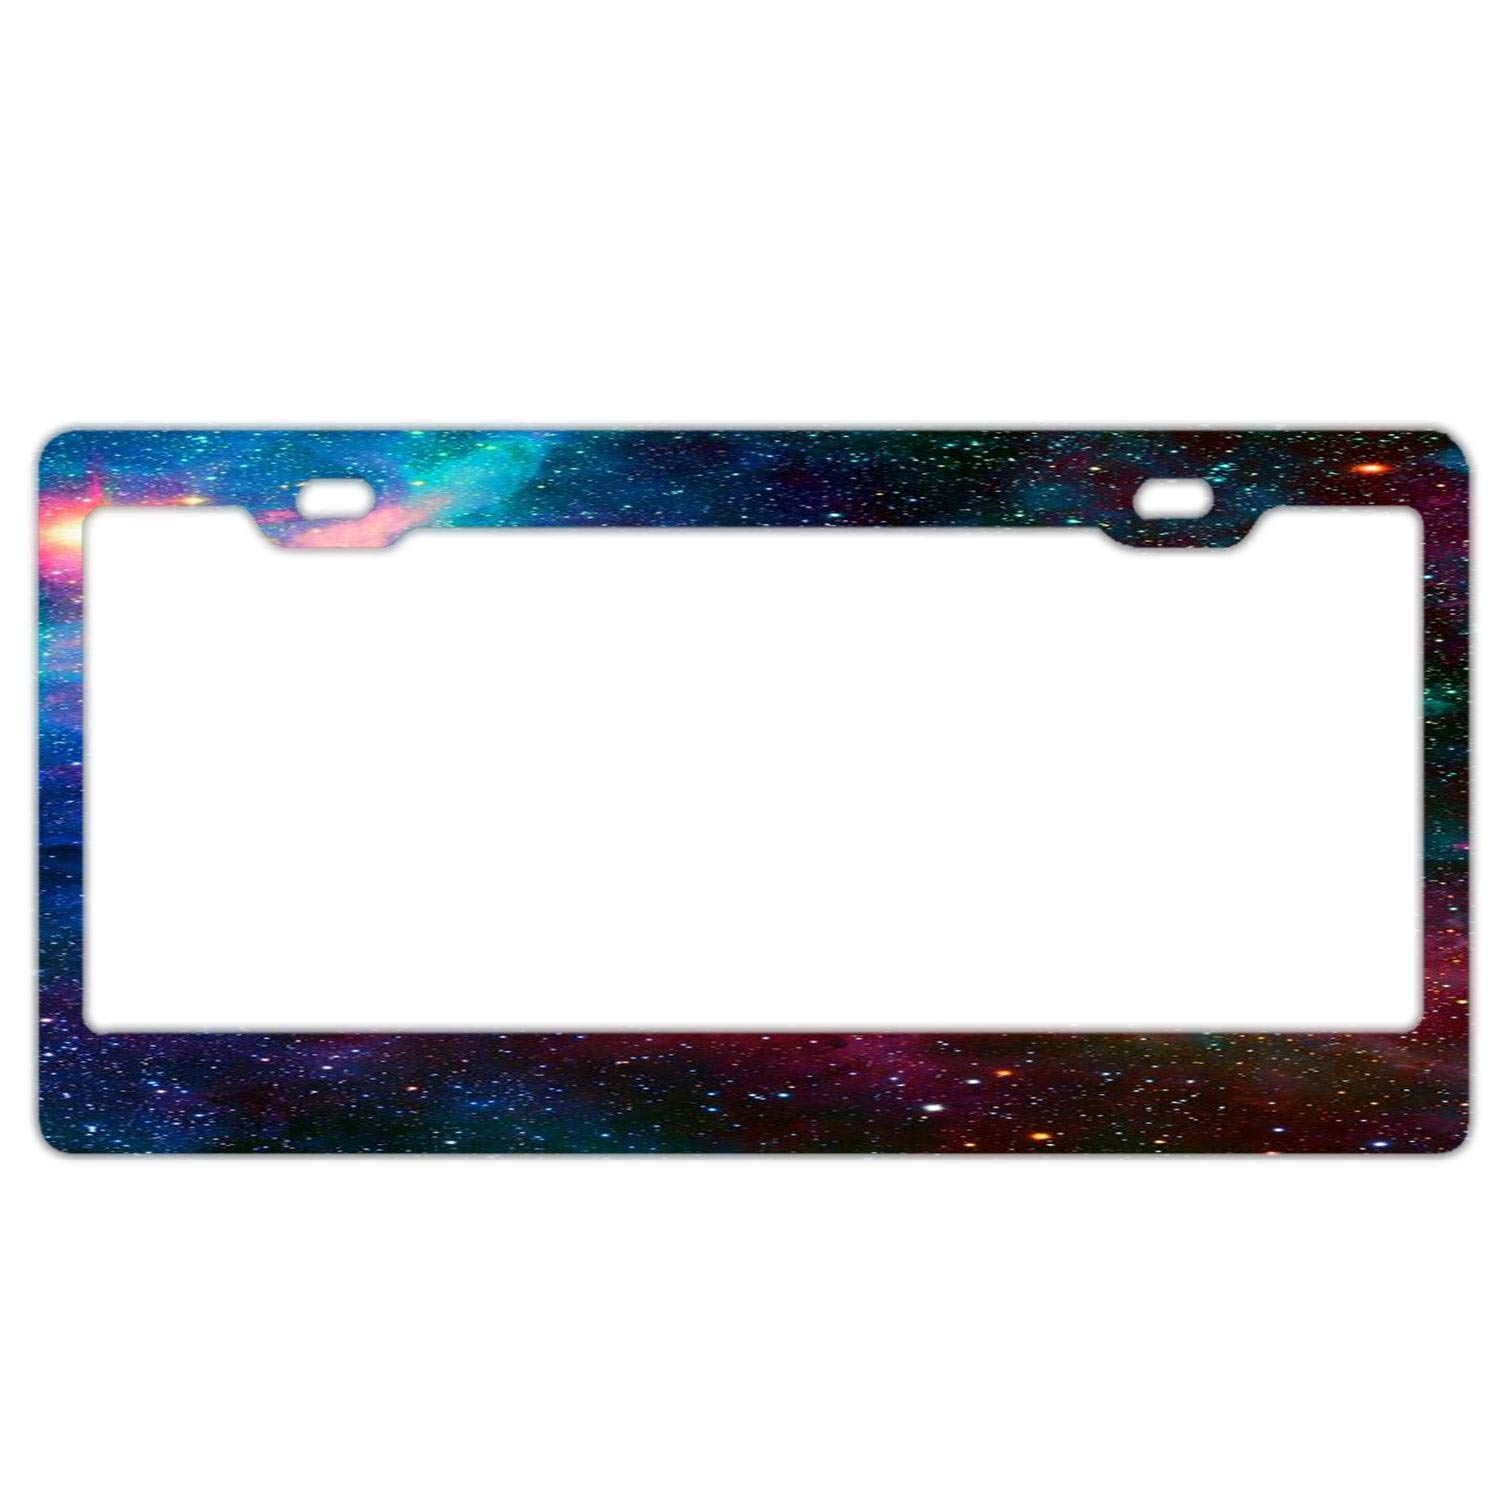 Aluminum Metal License Plate Frame Customized Frames Personalized License Plate Frame Car License Plate Cover for Both Front and Back License Tag